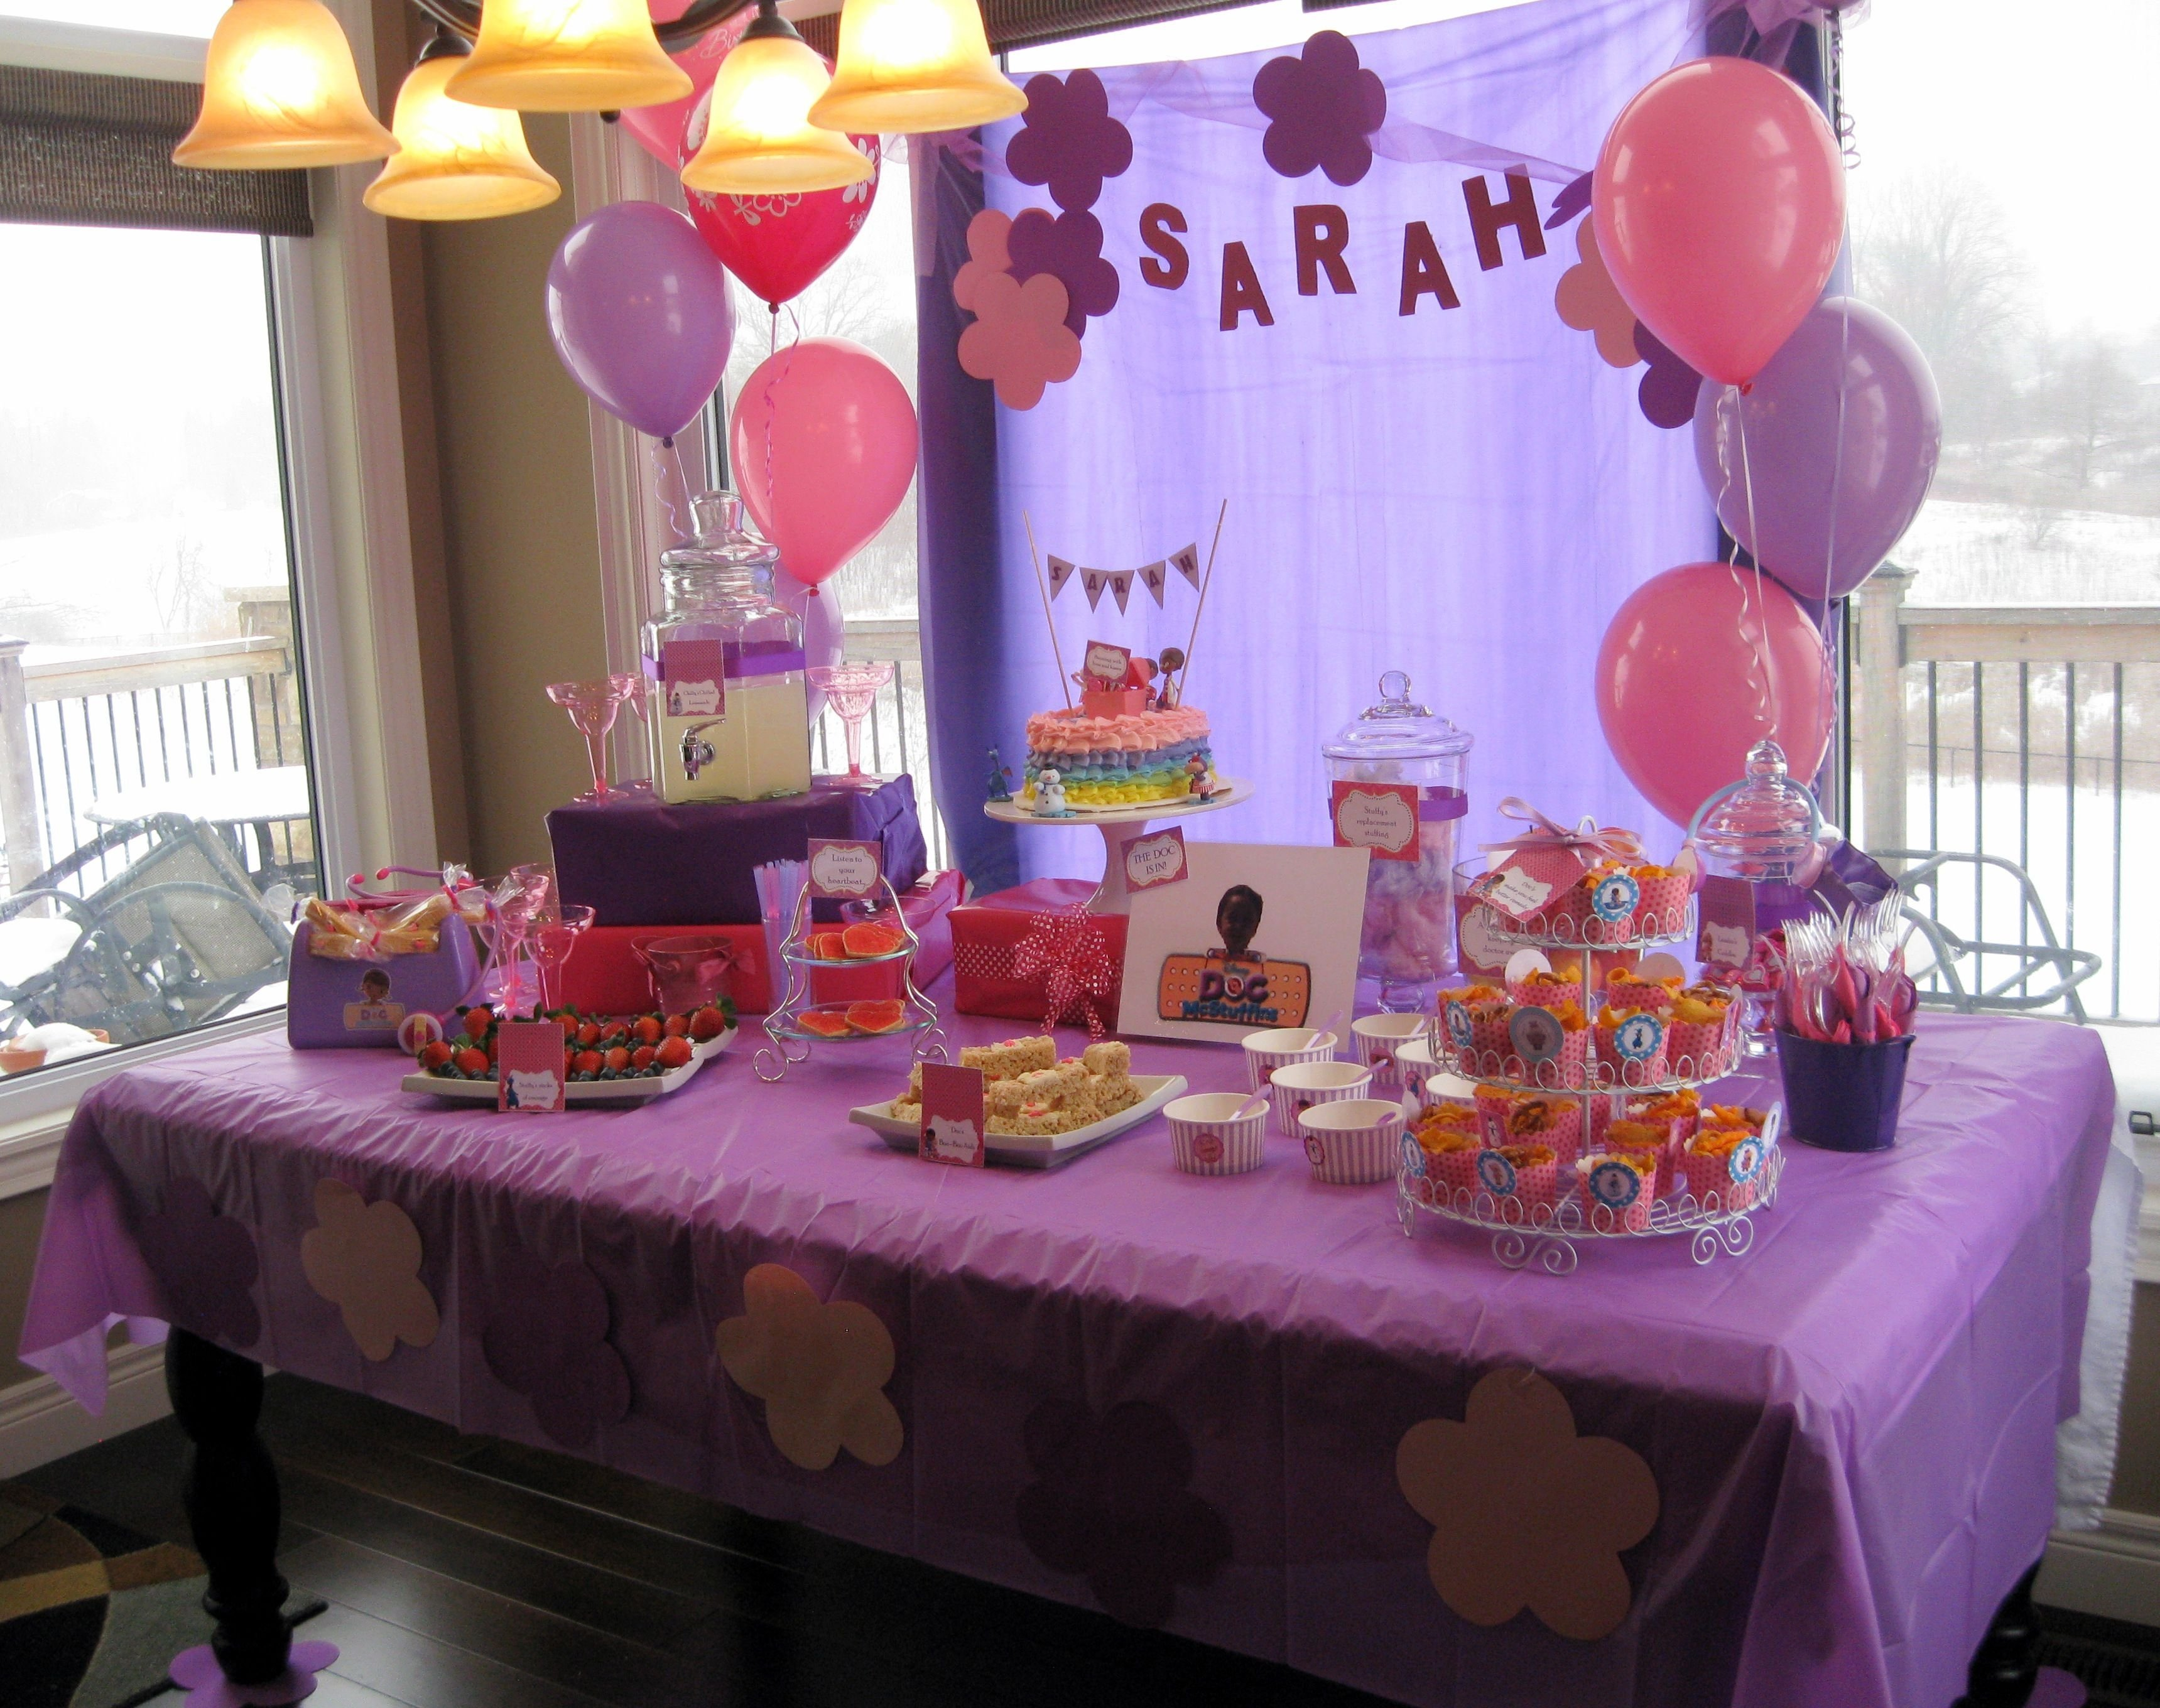 10 Lovely Doc Mcstuffins Birthday Party Ideas doc mcstuffins birthday party table decor kyndalls 3rd birthday 1 2020